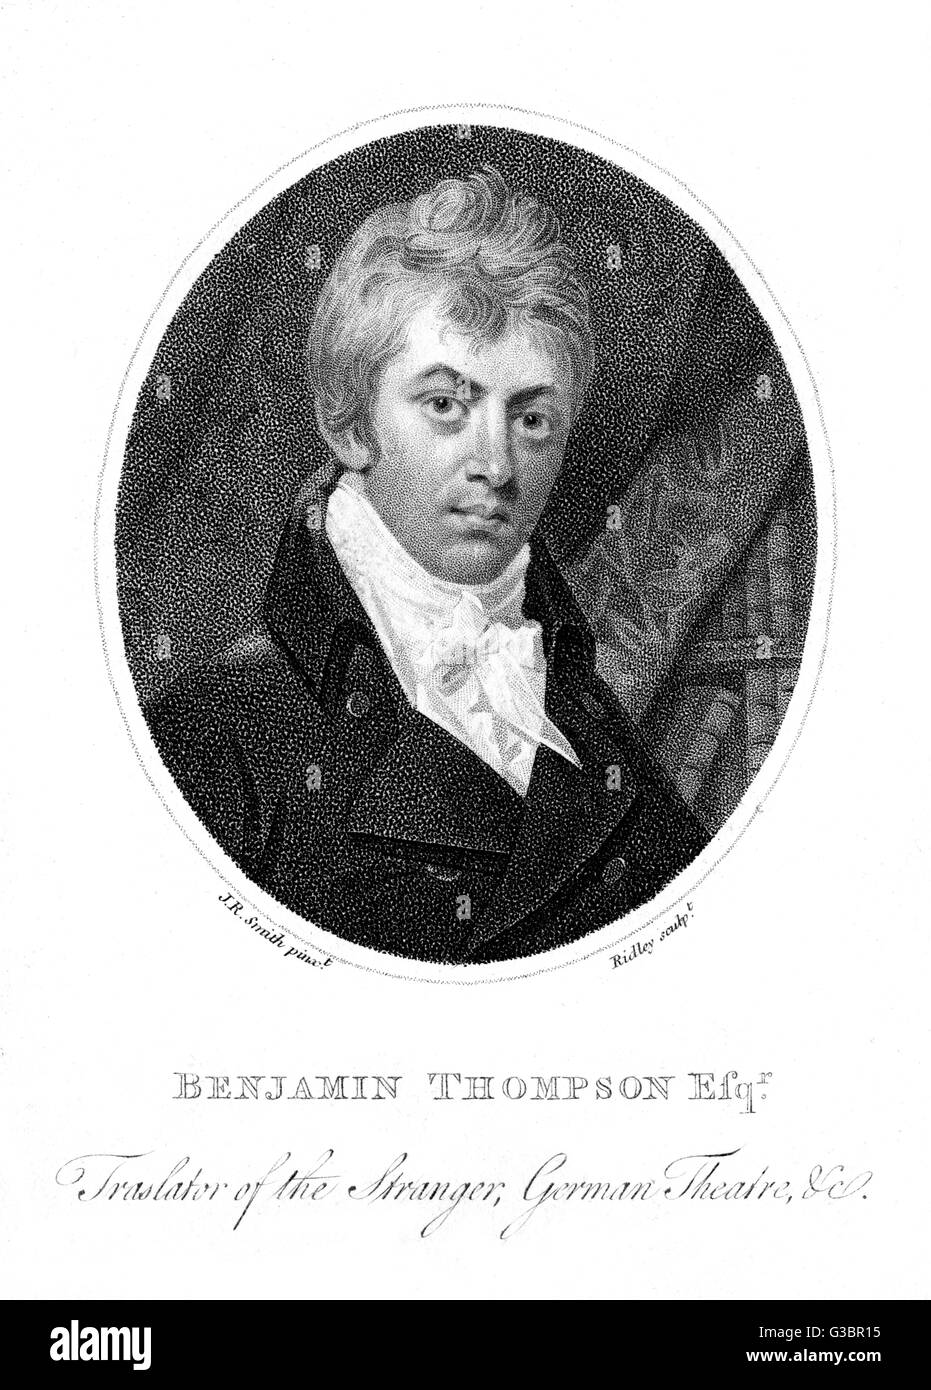 BENJAMIN THOMPSON writer and translator         Date: 1776 - 1816 - Stock Image